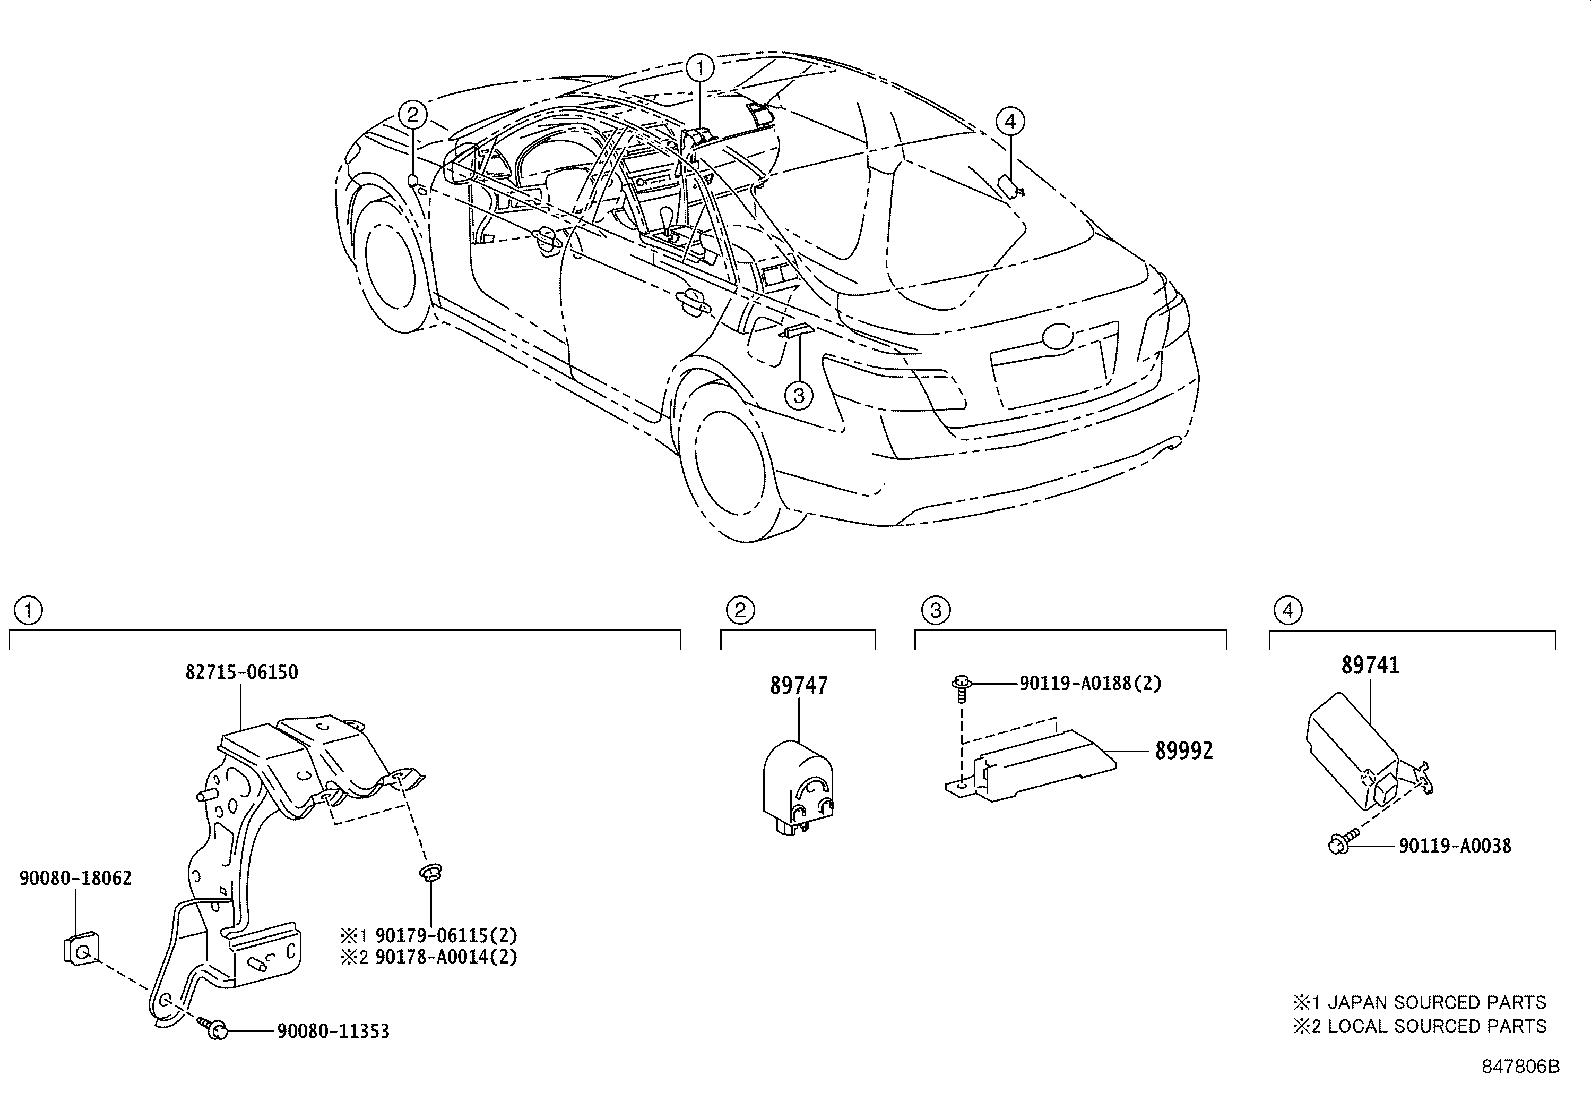 Toyota Camry Harness, electrical key wire, no. 2. Push